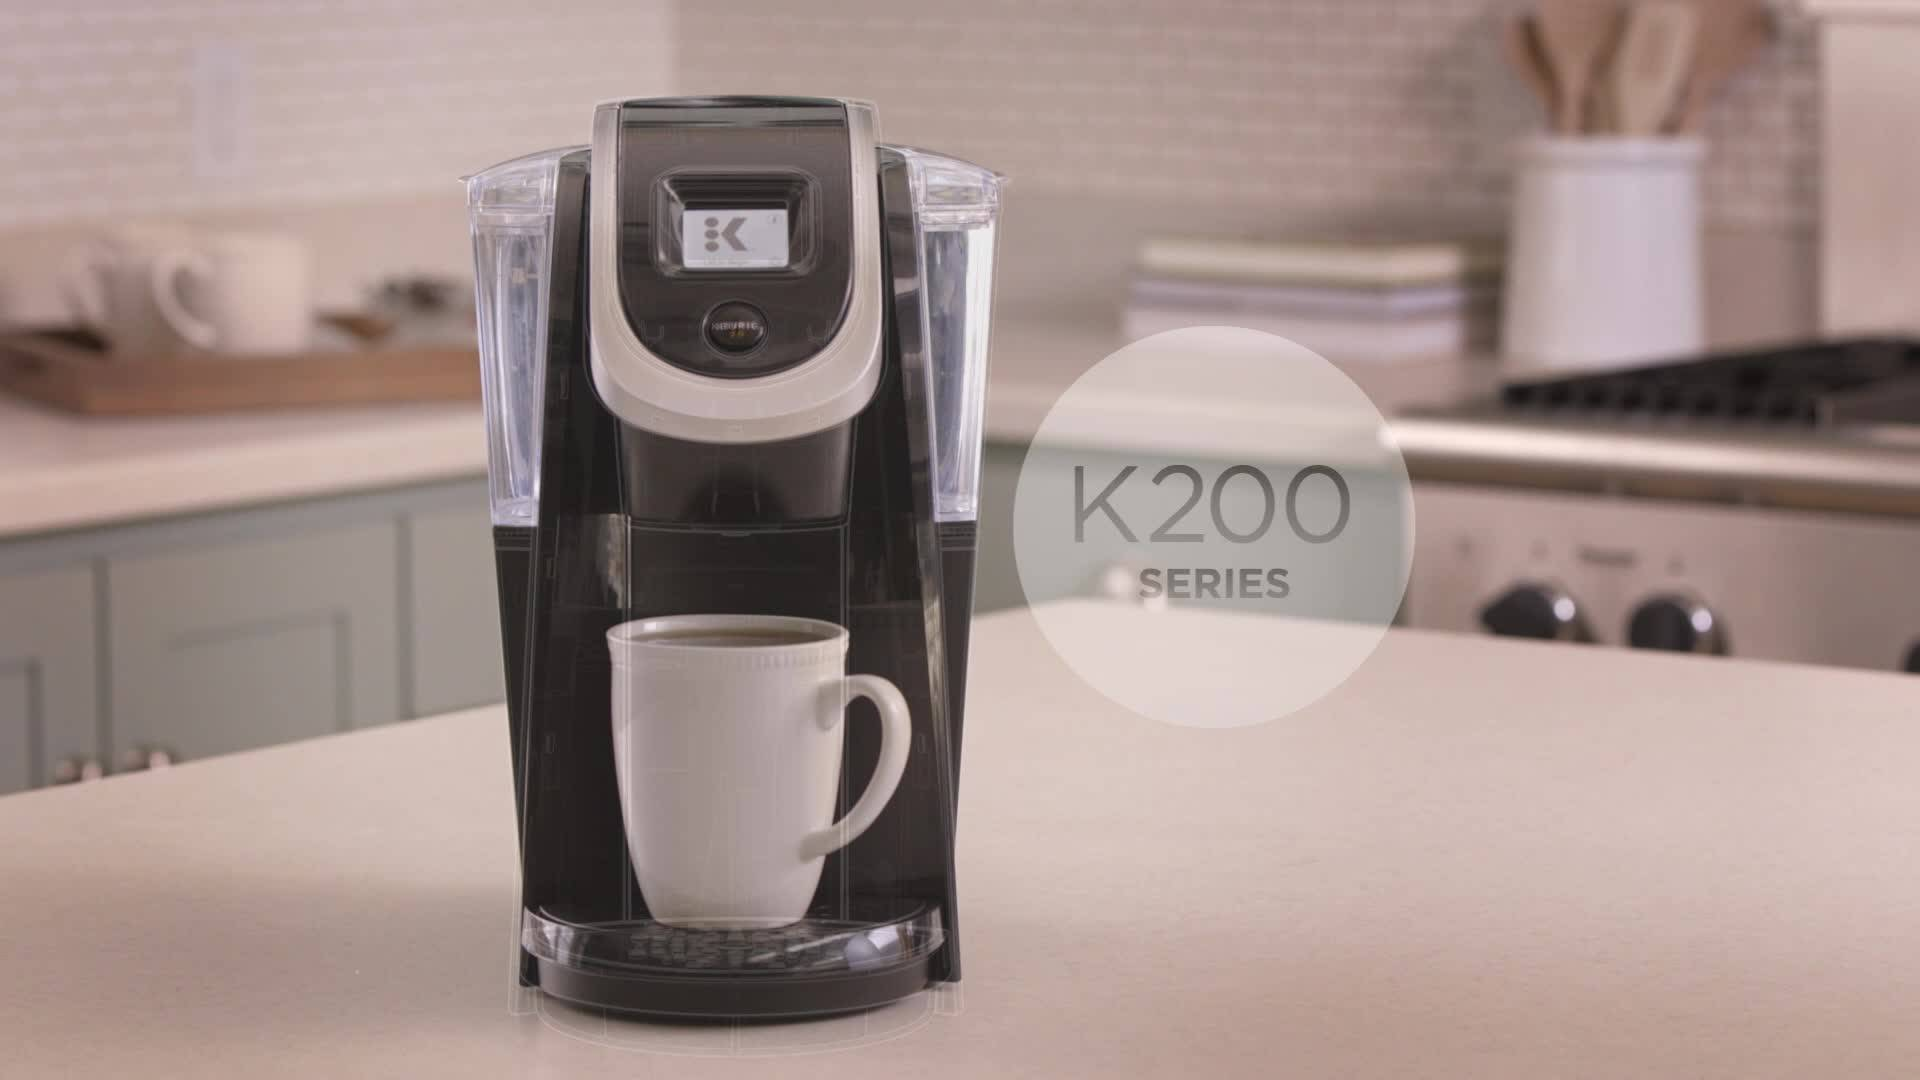 Single Cup Coffee Maker Canadian Tire : Canadian Tire: Keurig K200 USD 89.99 + 50x e-CT Money Canadian Freebies, Coupons, Deals, Bargains ...